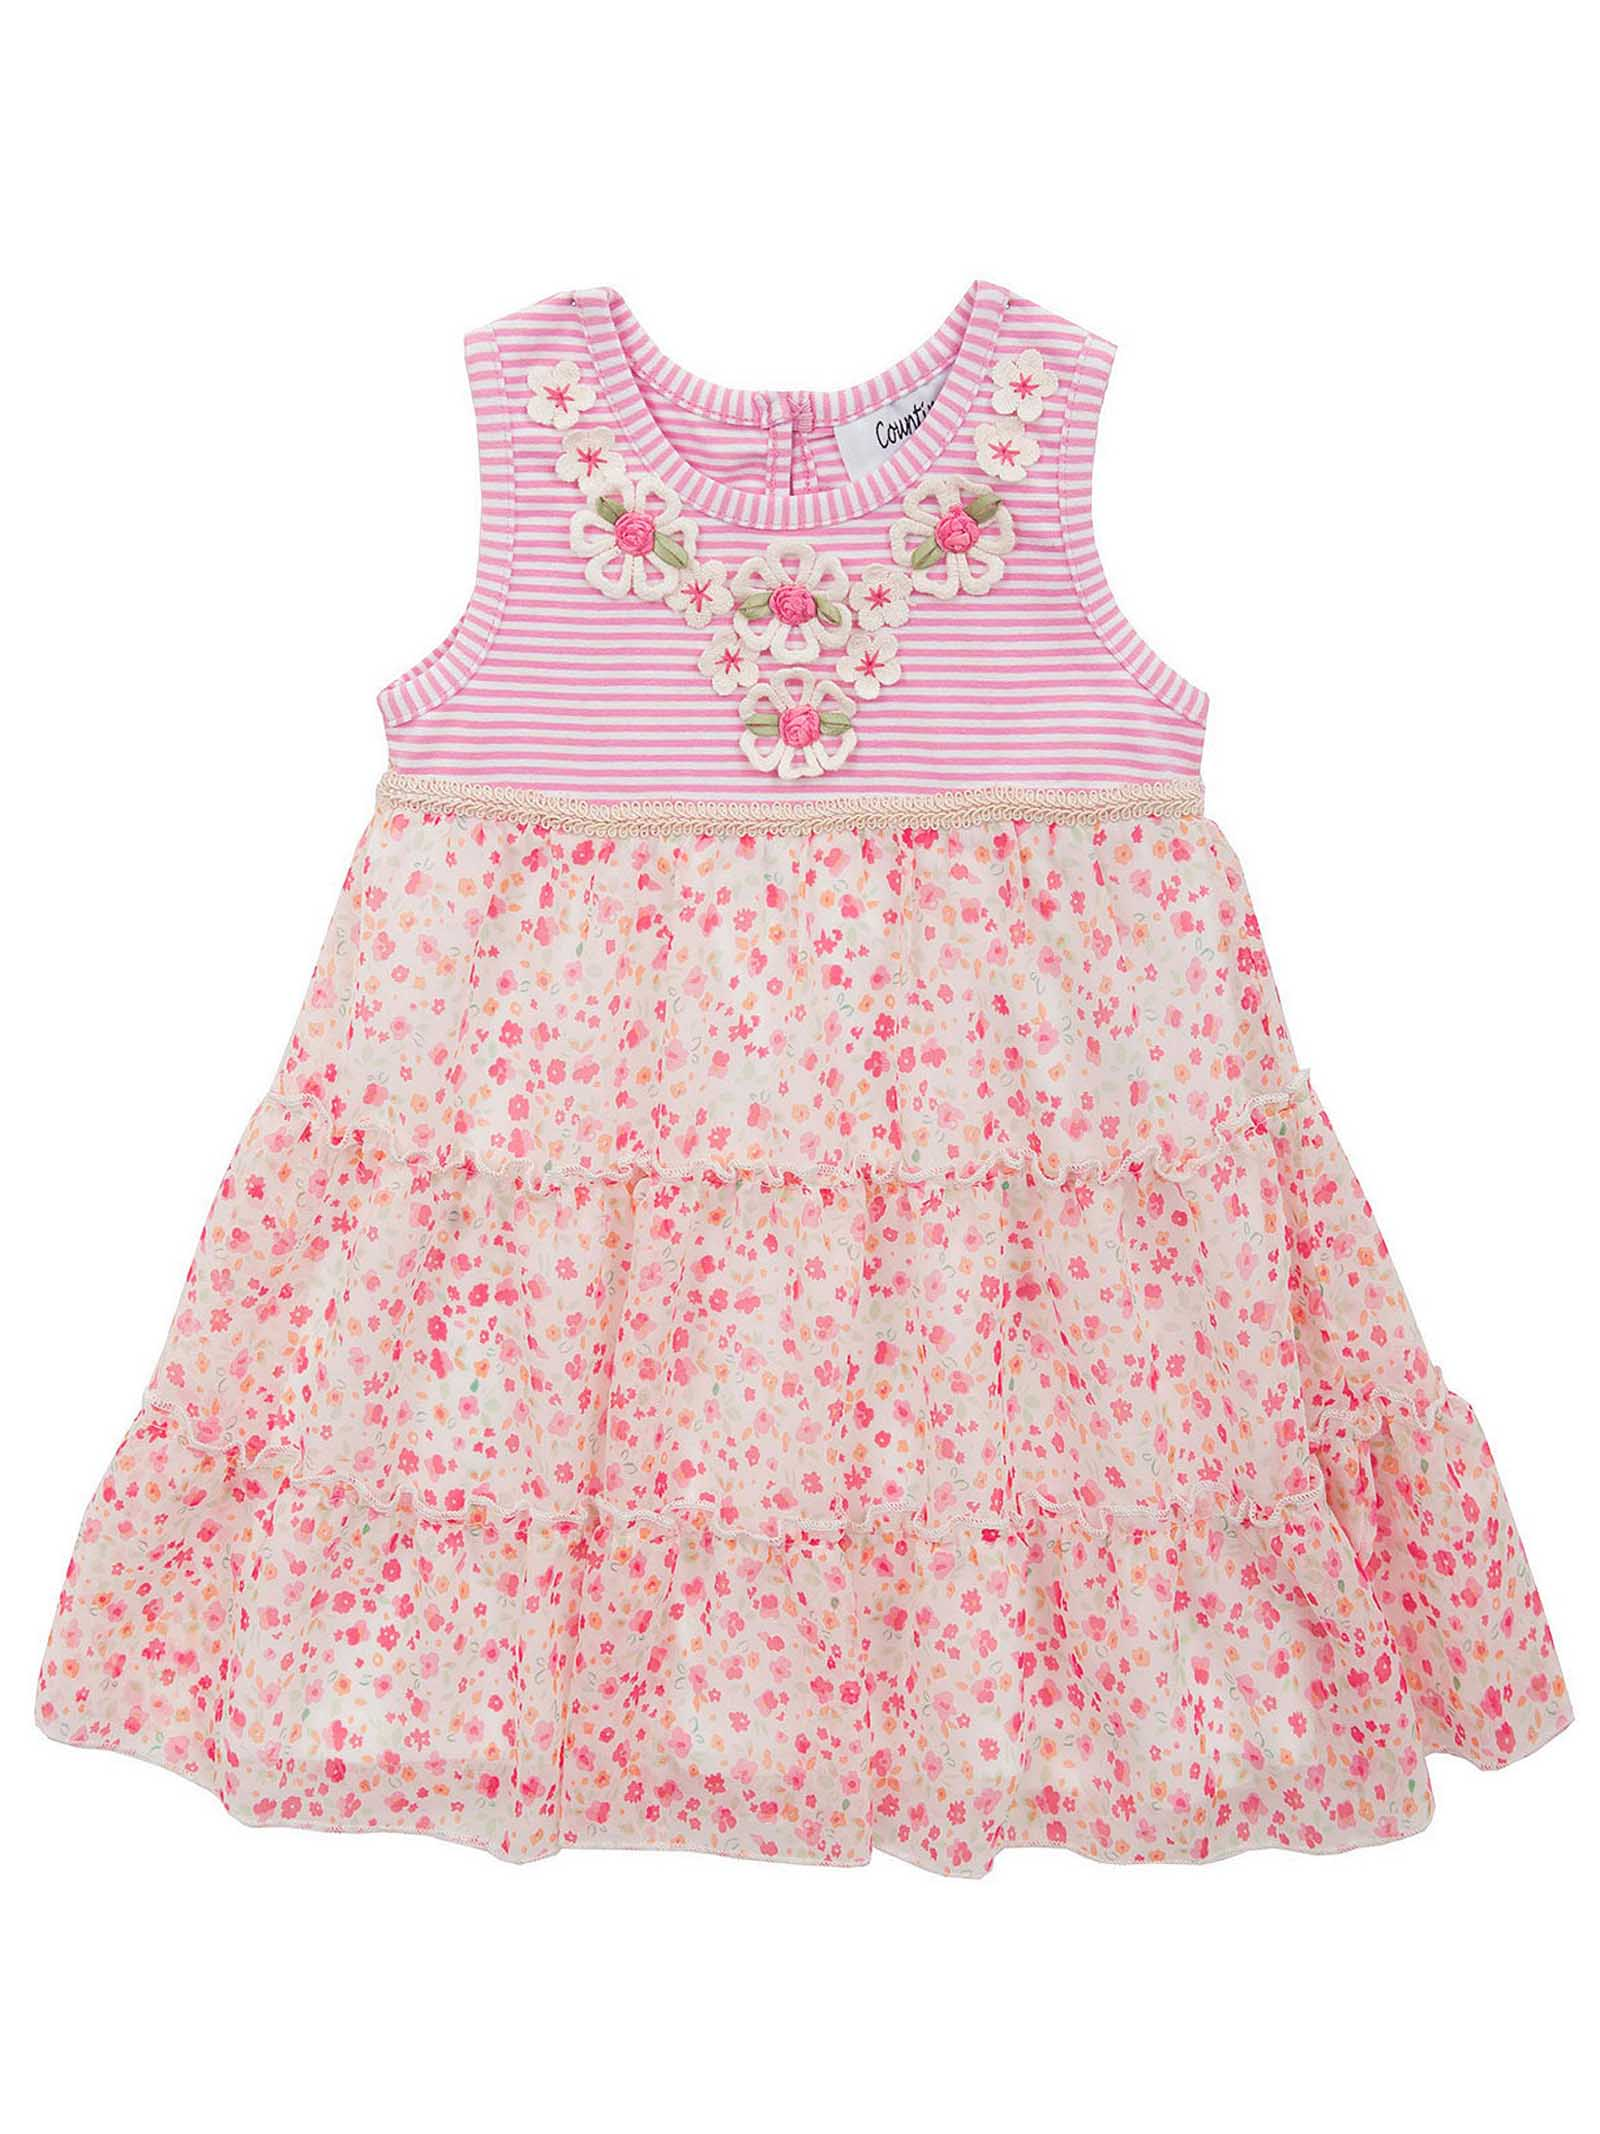 Counting Daisies Baby Girls Summer Dress Stripe & Floral Pink